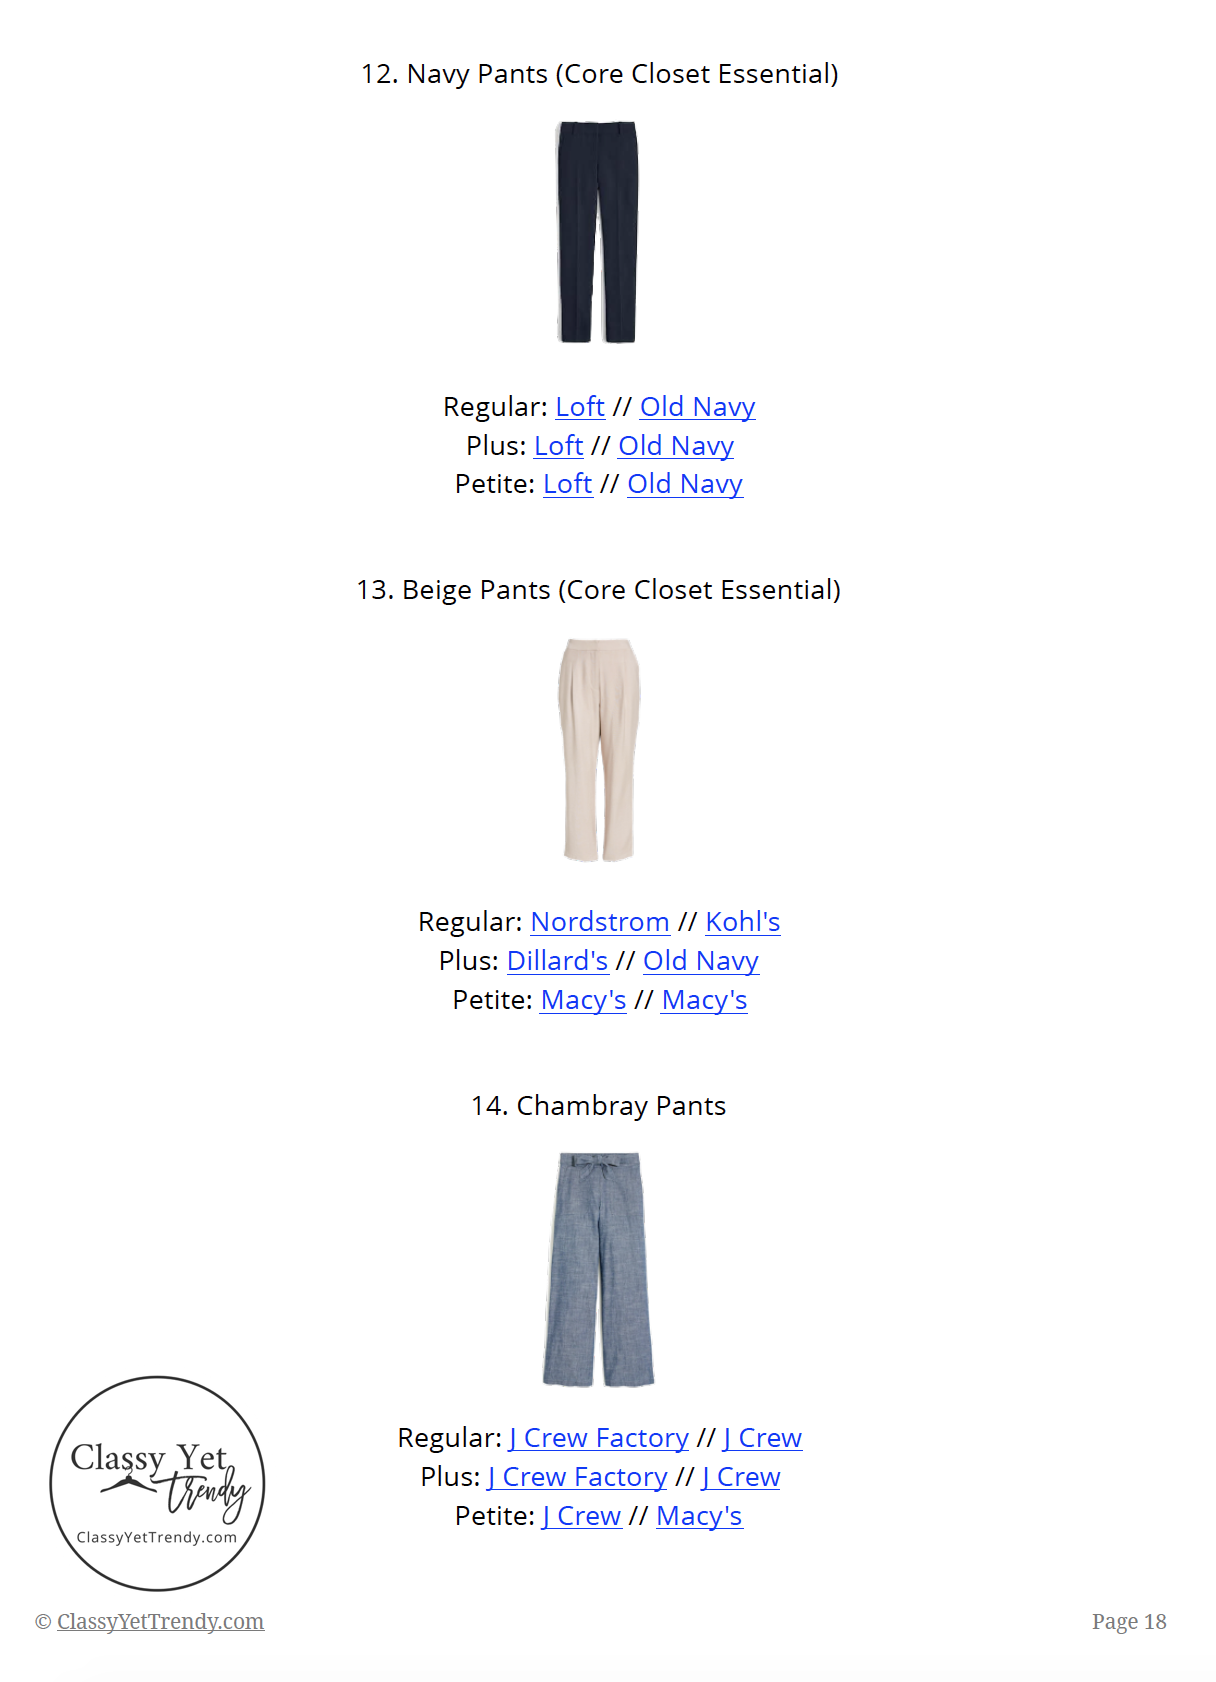 Workwear Capsule Wardrobe Summer 2019 - page 18